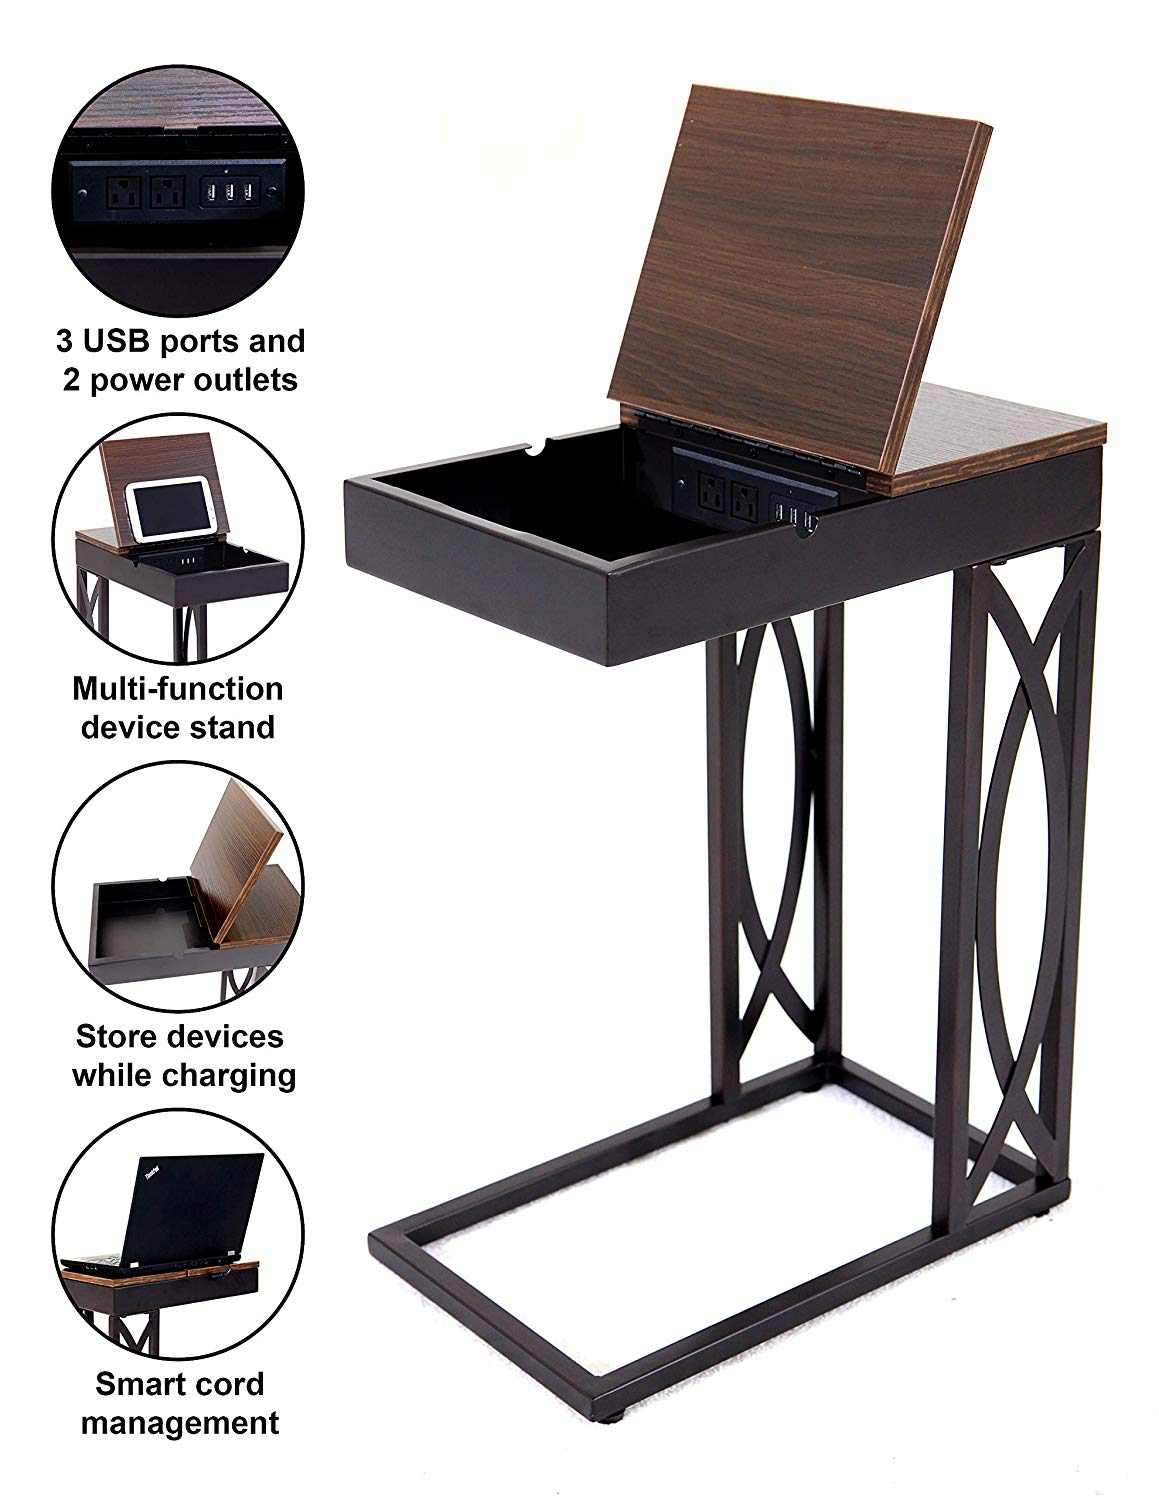 leisure space seetable stash with device stand accent table power charging station and storage dark brown frame walnut finish top end side high dining for oval tablecloth sizes